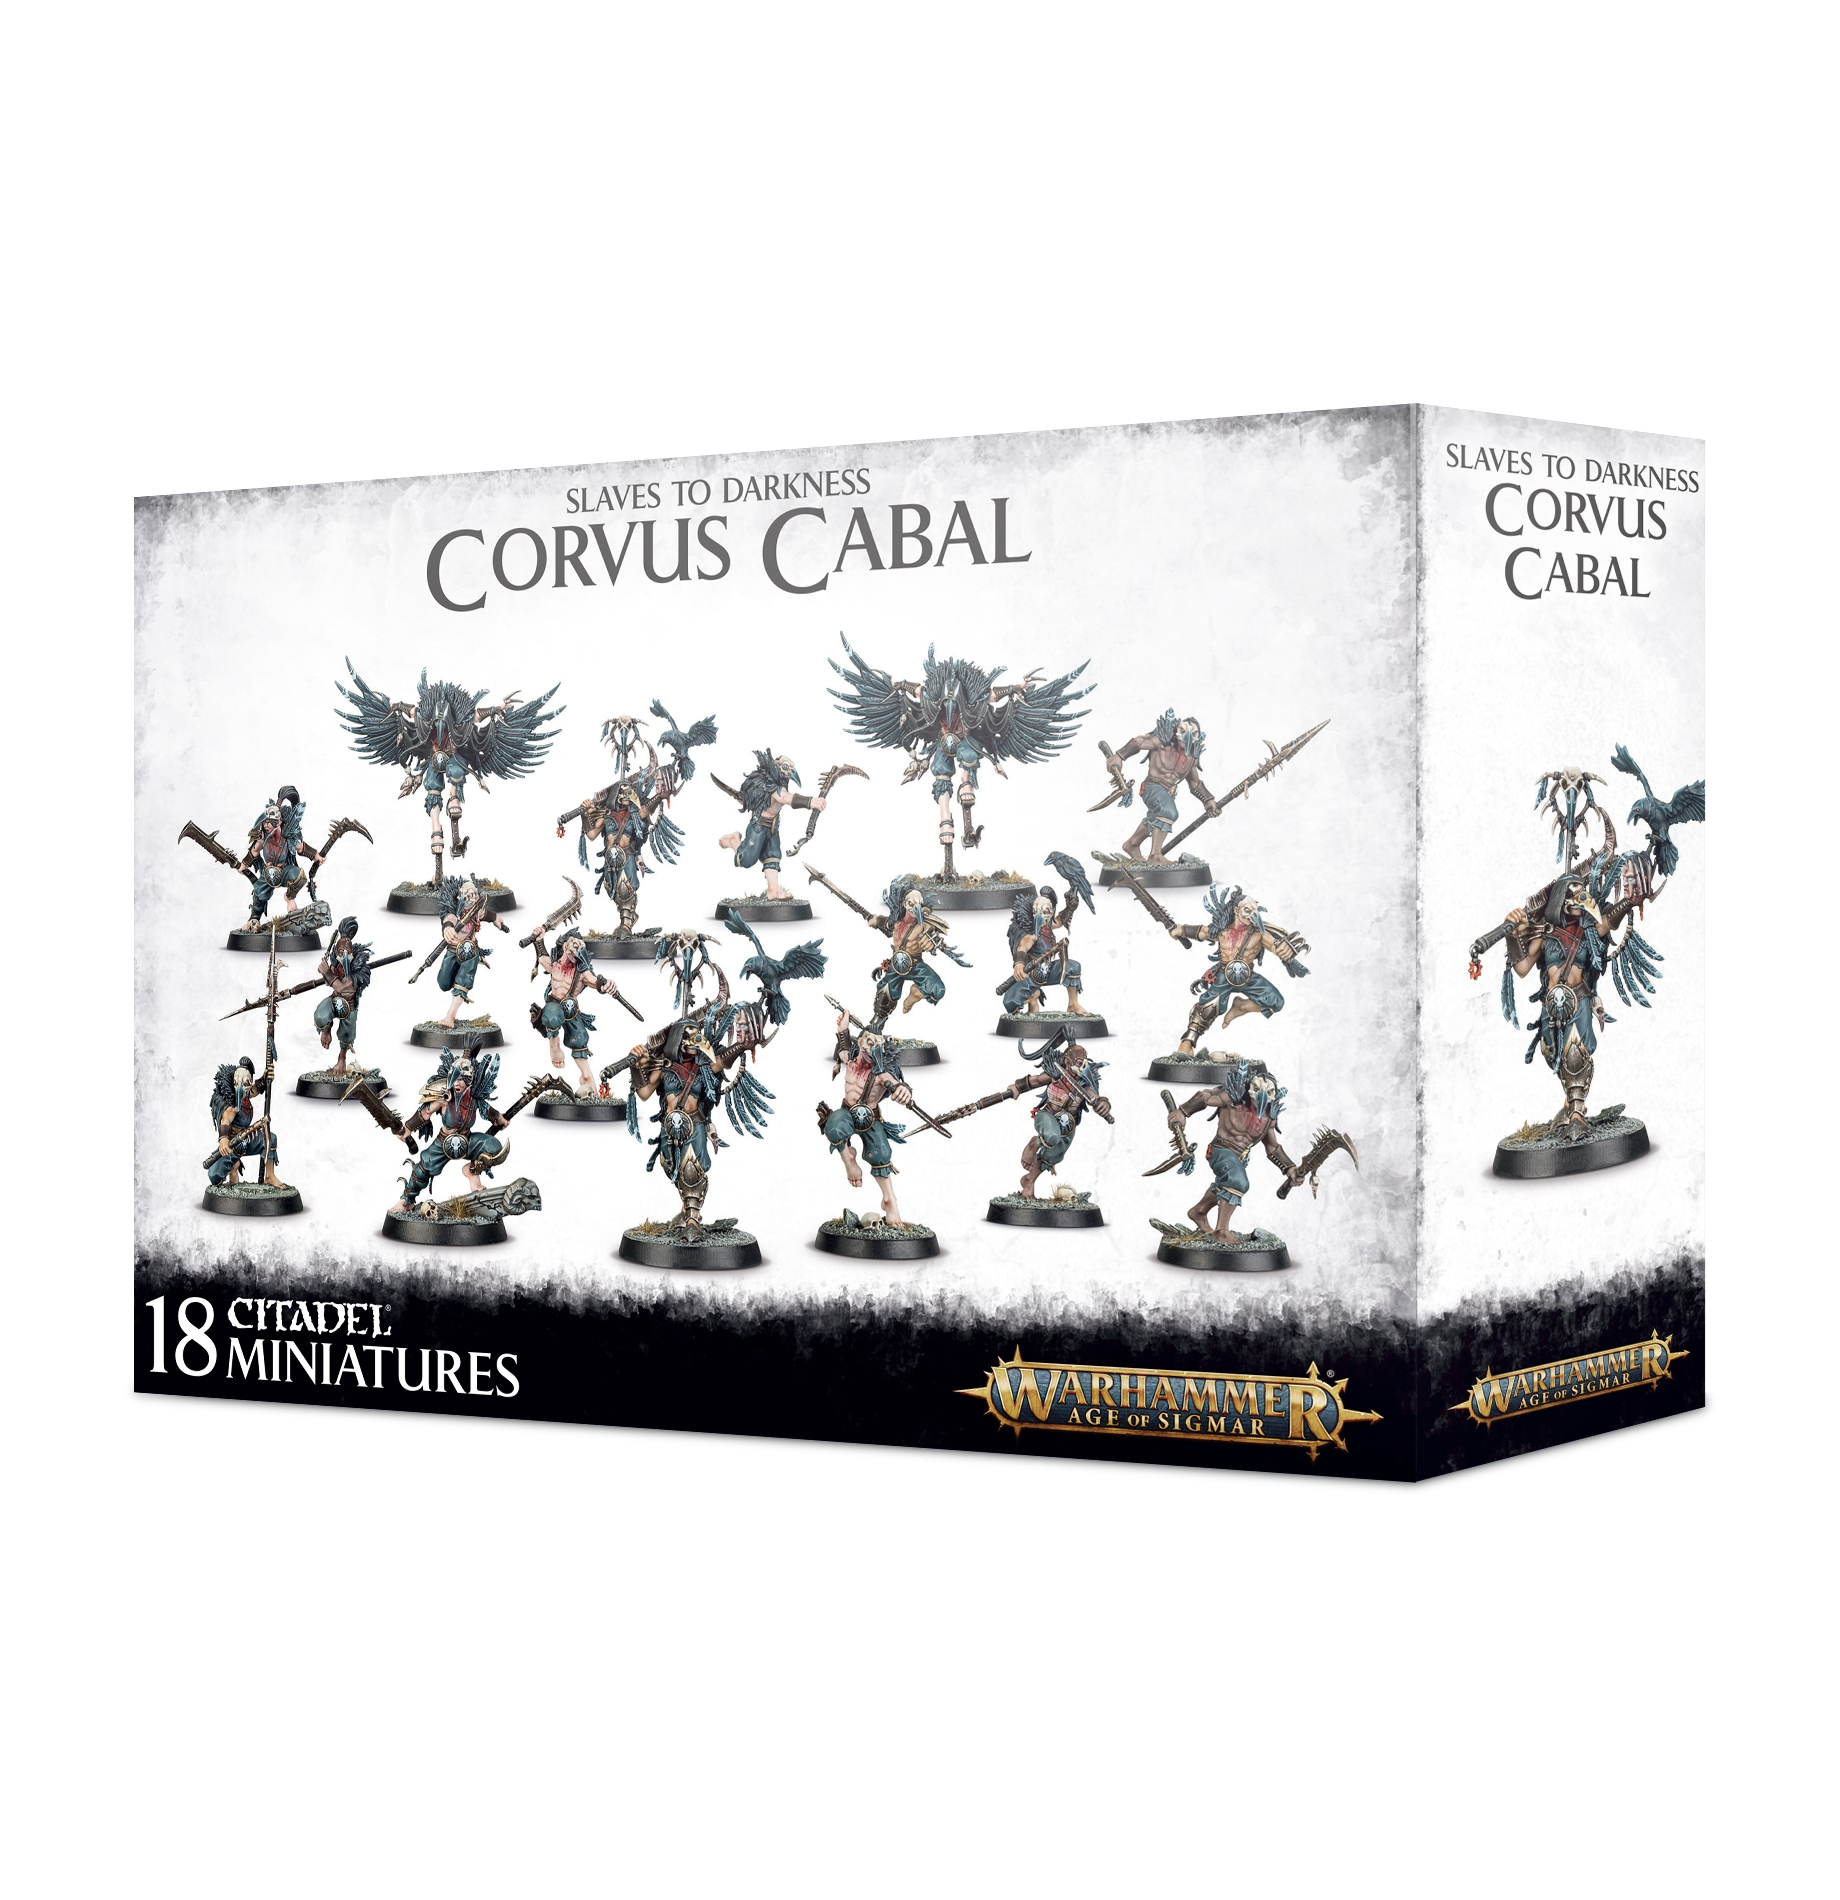 Warhammer Age of Sigmar: Slaves to Darkness: Corvus Cabal